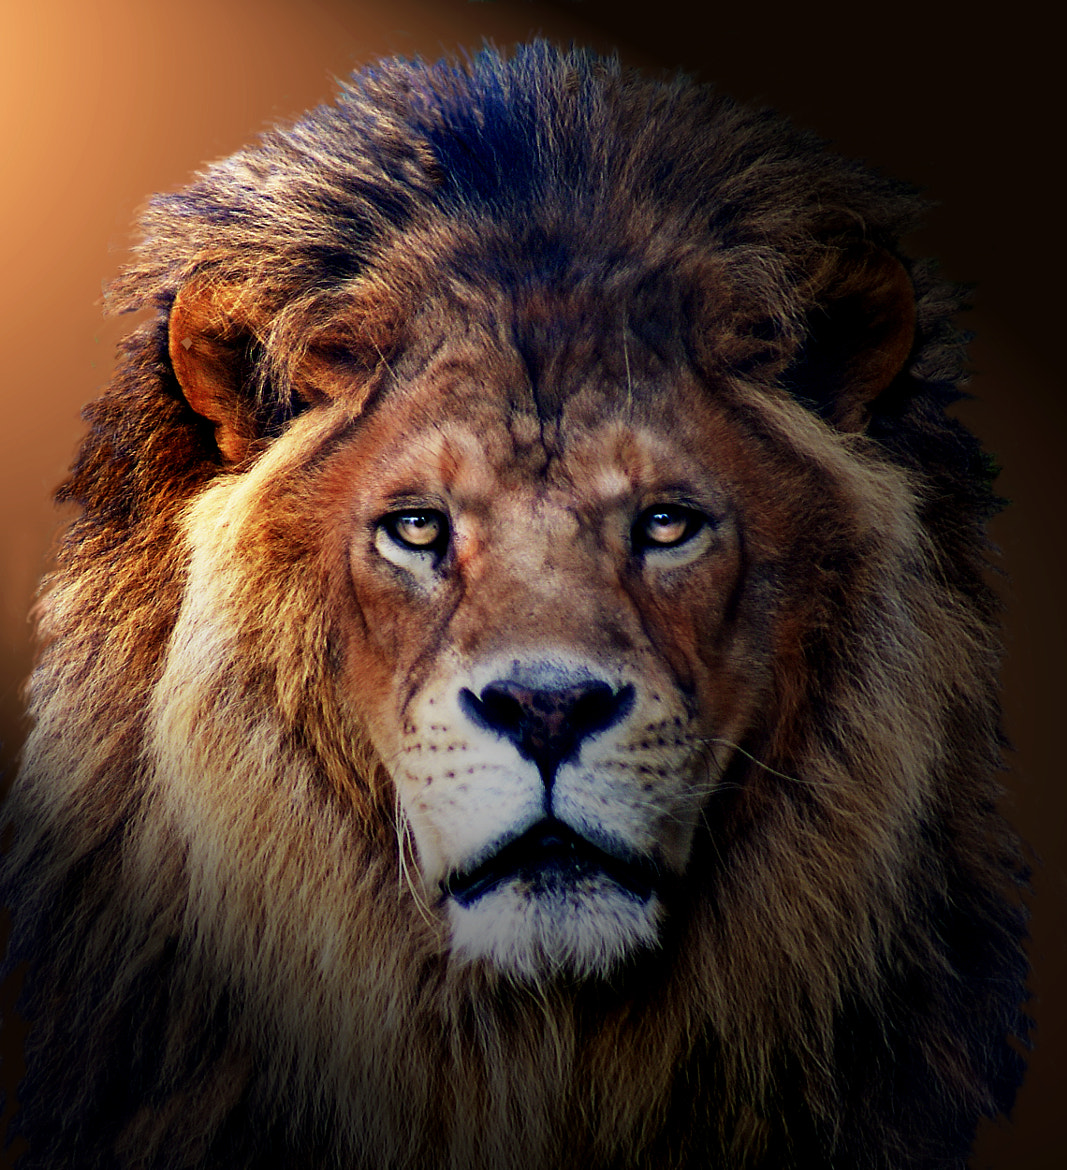 Photograph Lion 2 by Brian Masters on 500px